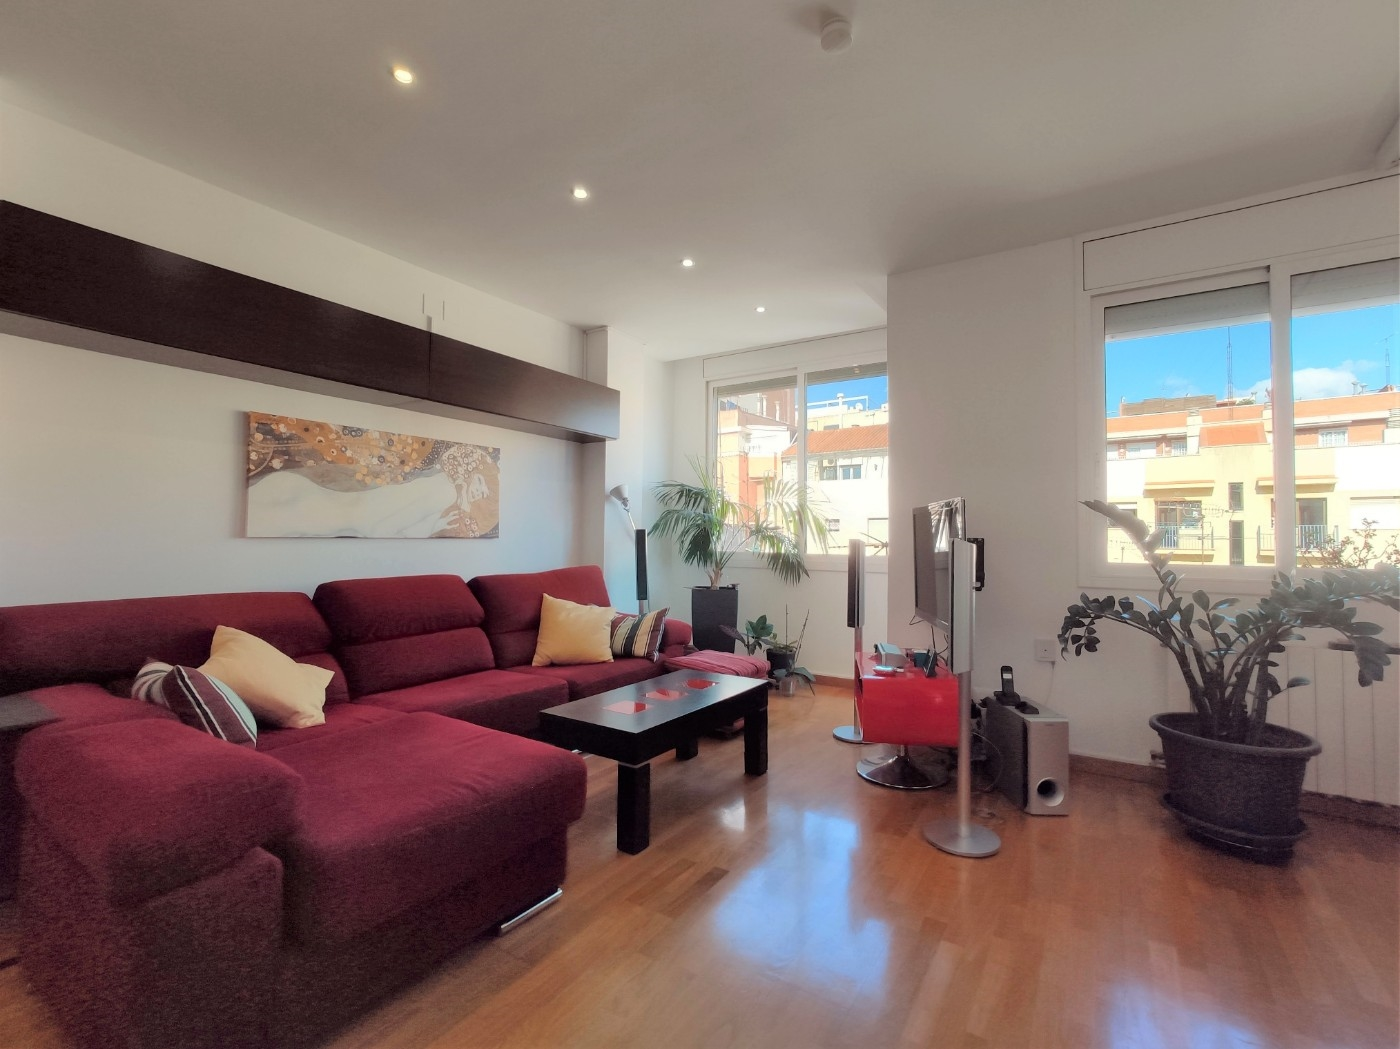 Apartment in Barcelona. Balcony.3 bedrooms. For sale: 415.000 €.